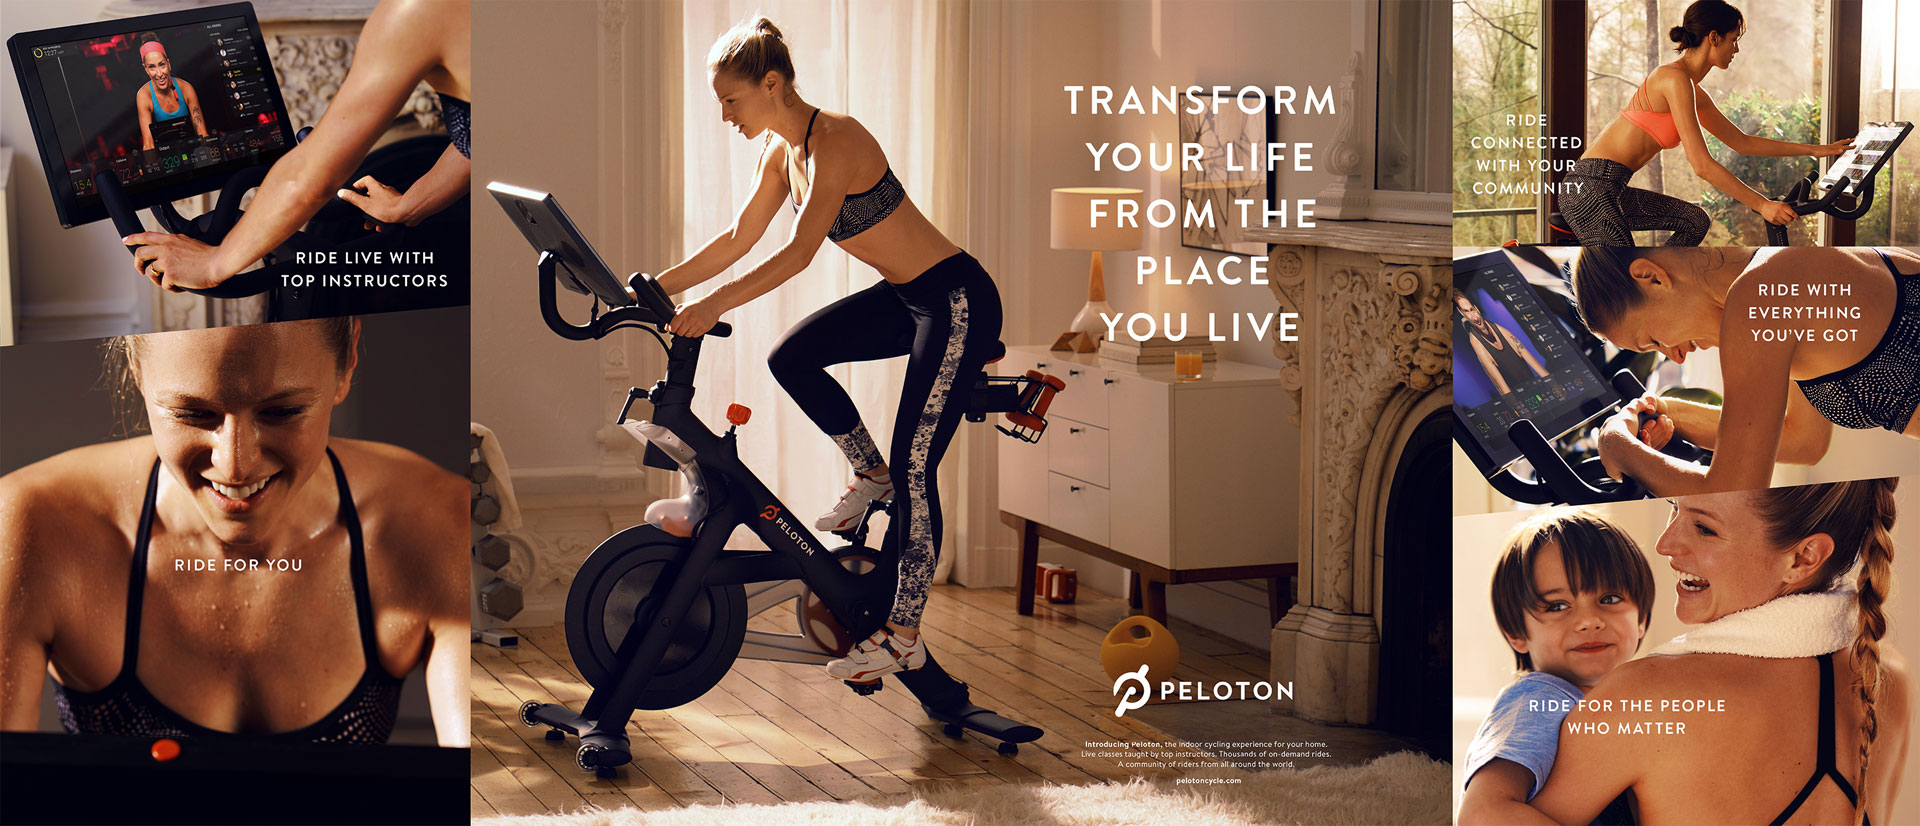 PELOTON CYCLE | CHRISTOPHER ANDERSON